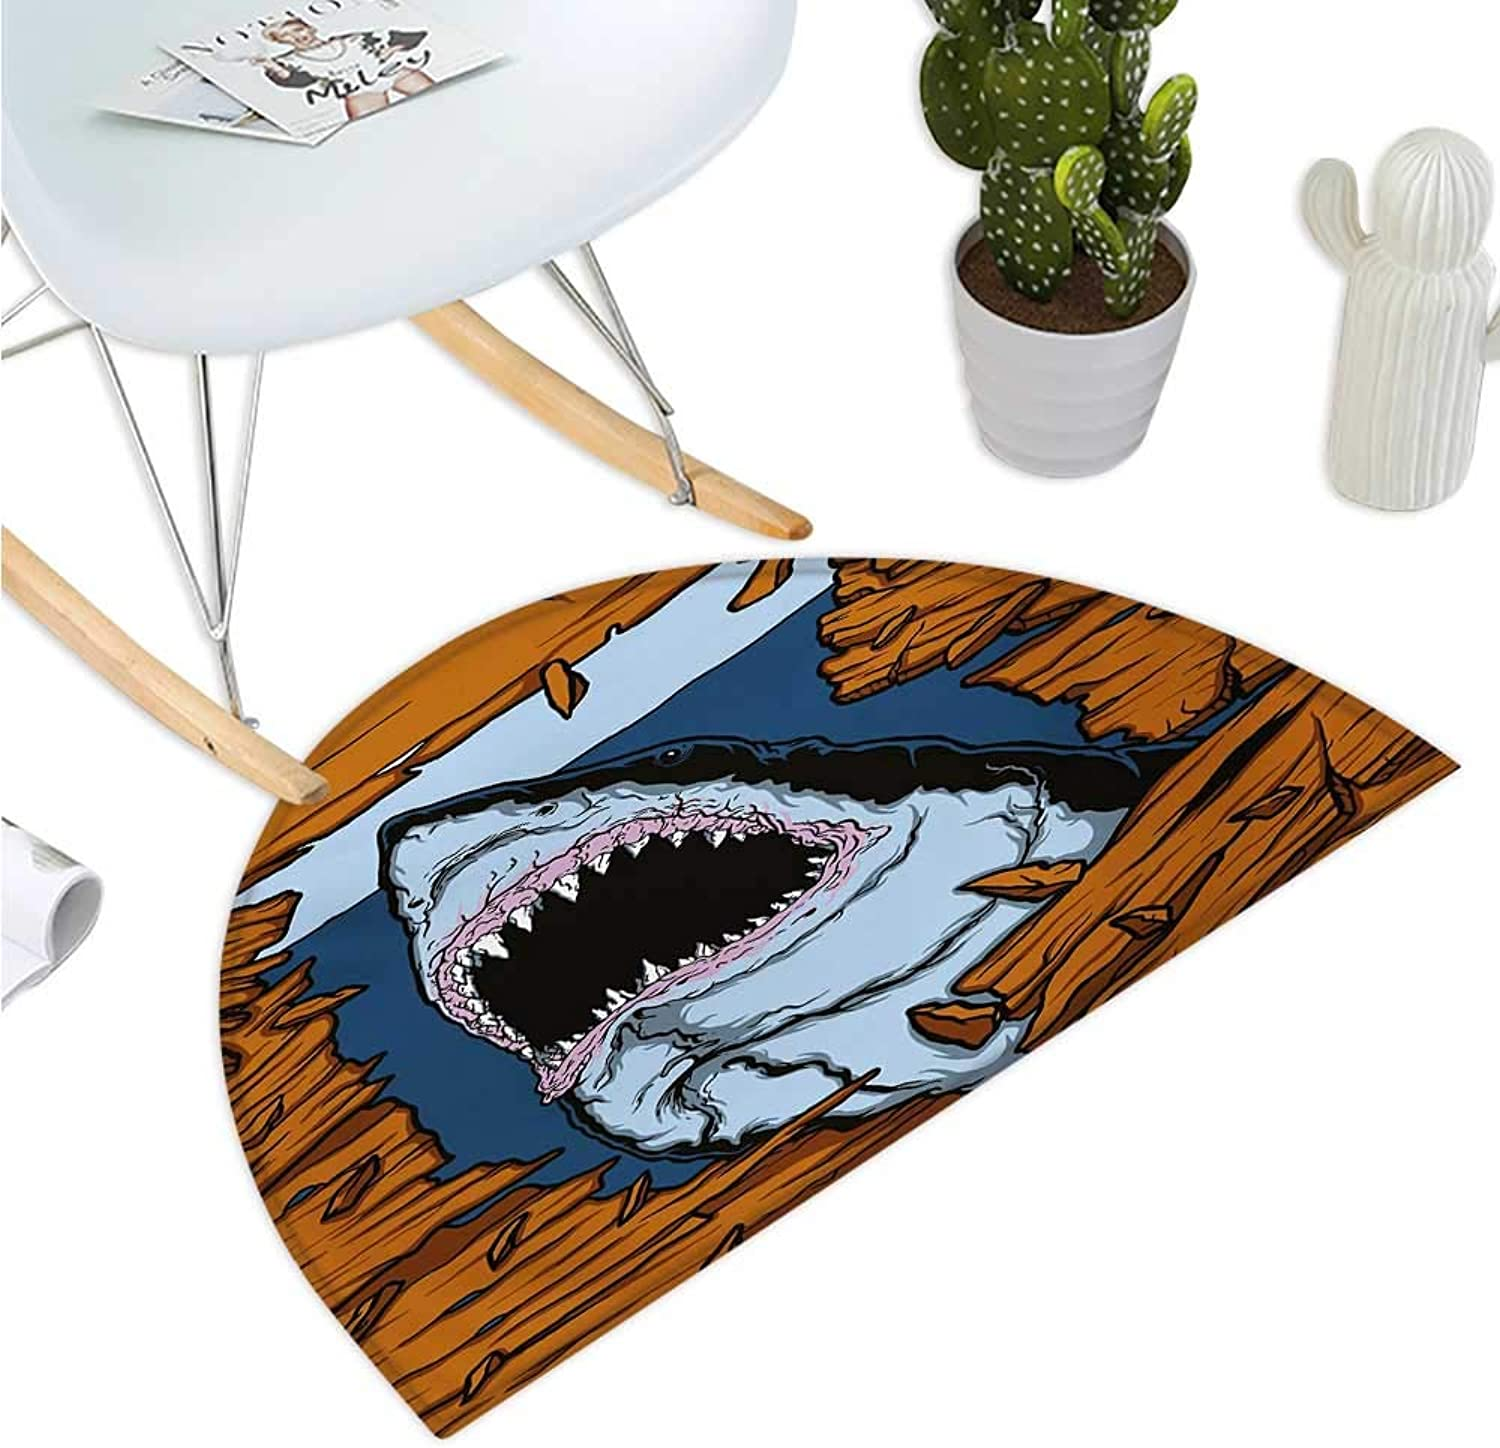 Shark Half Round Door mats Wild Fish Breaking Wooden Plank Danger Sign Killer Creature Fun Illustration Bathroom Mat H 35.4  xD 53.1  Ginger Dark bluee